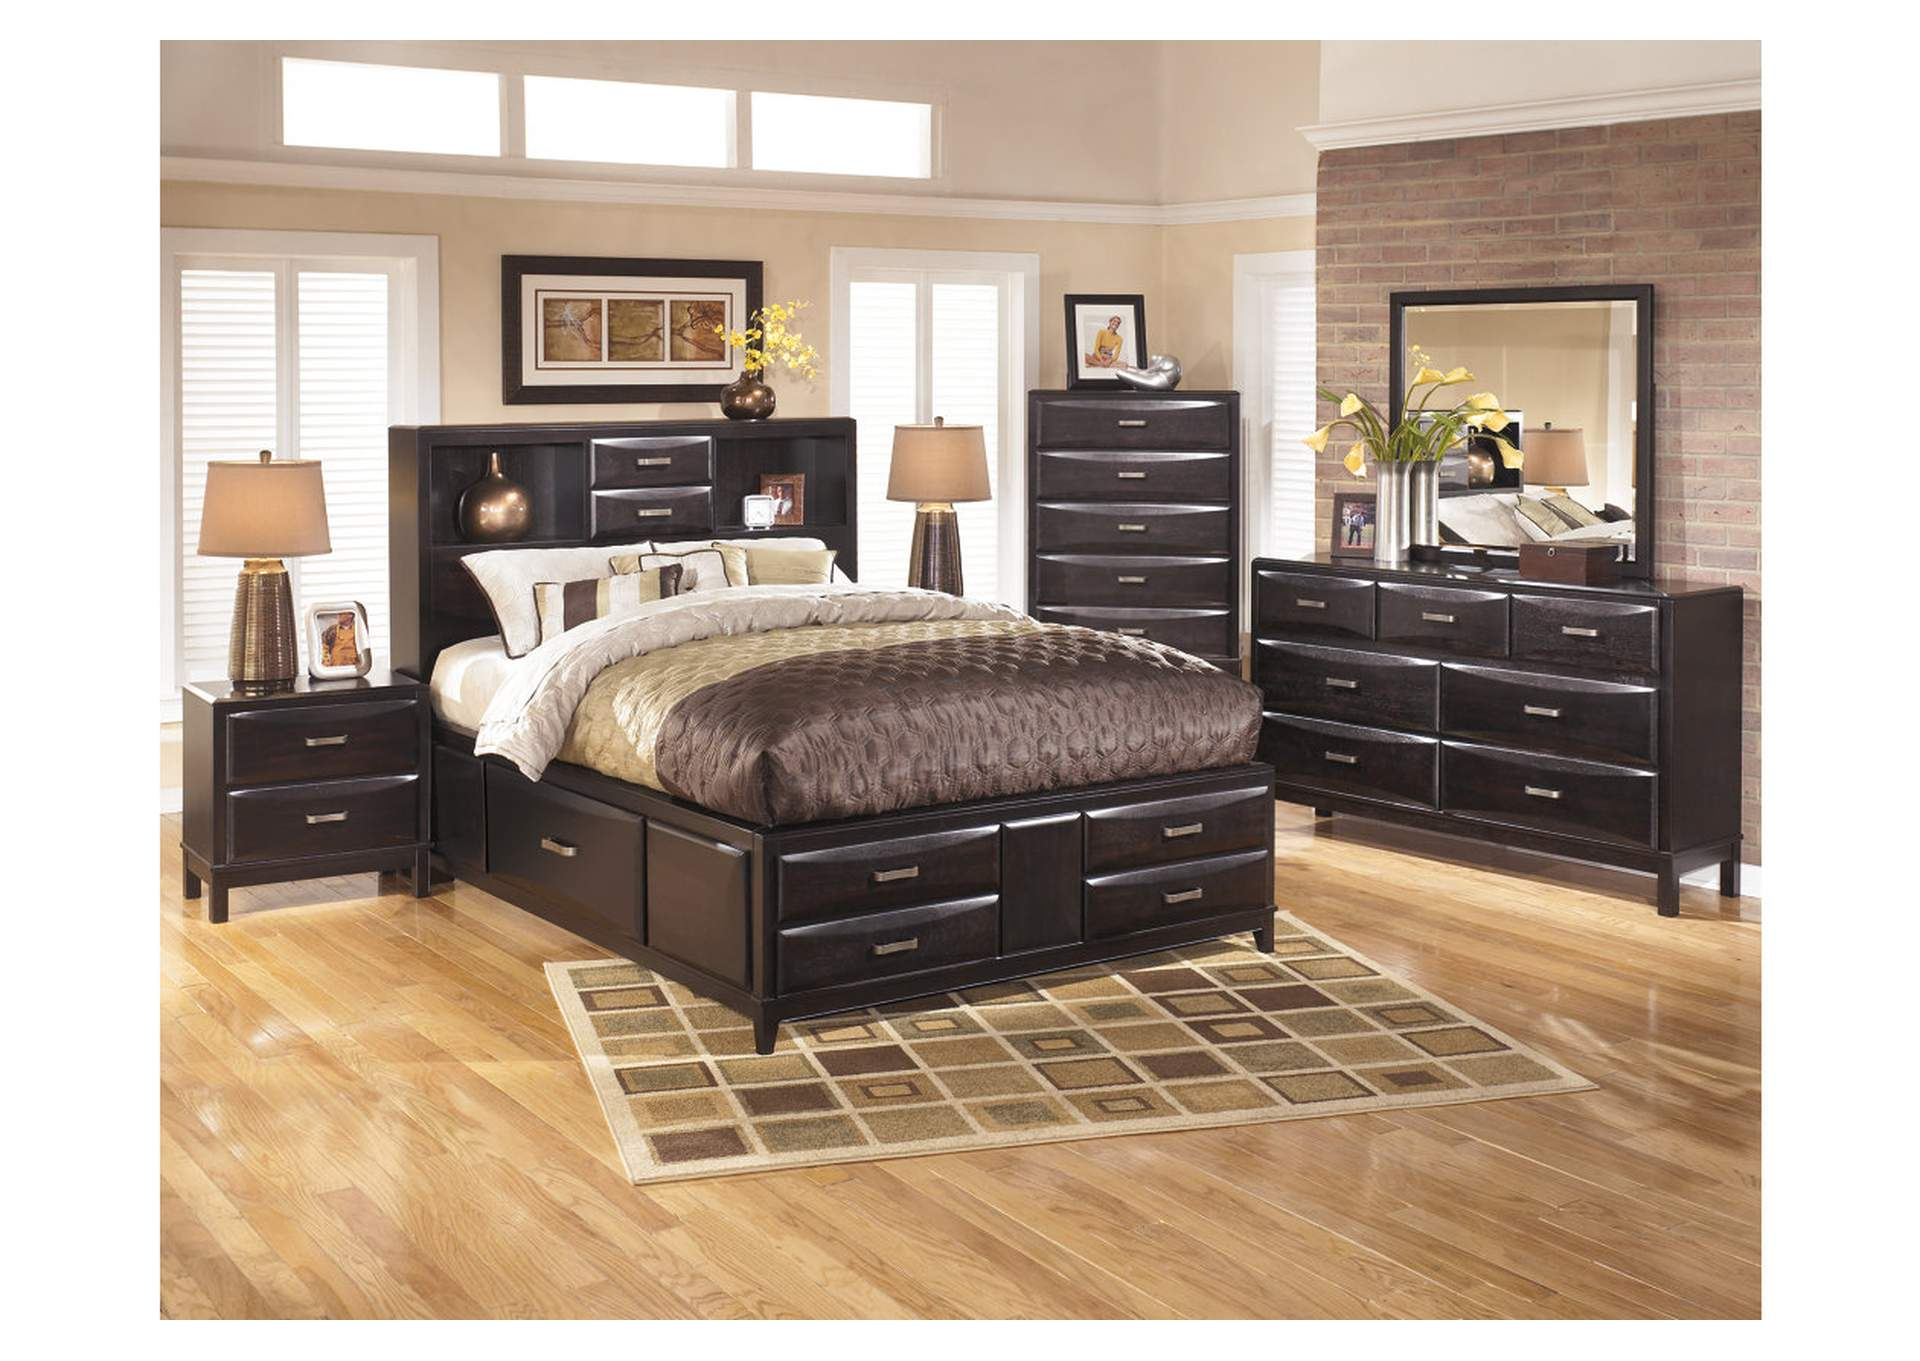 Kira Black King Storage Bed w/Dresser, Mirror & Drawer Chest,Ashley